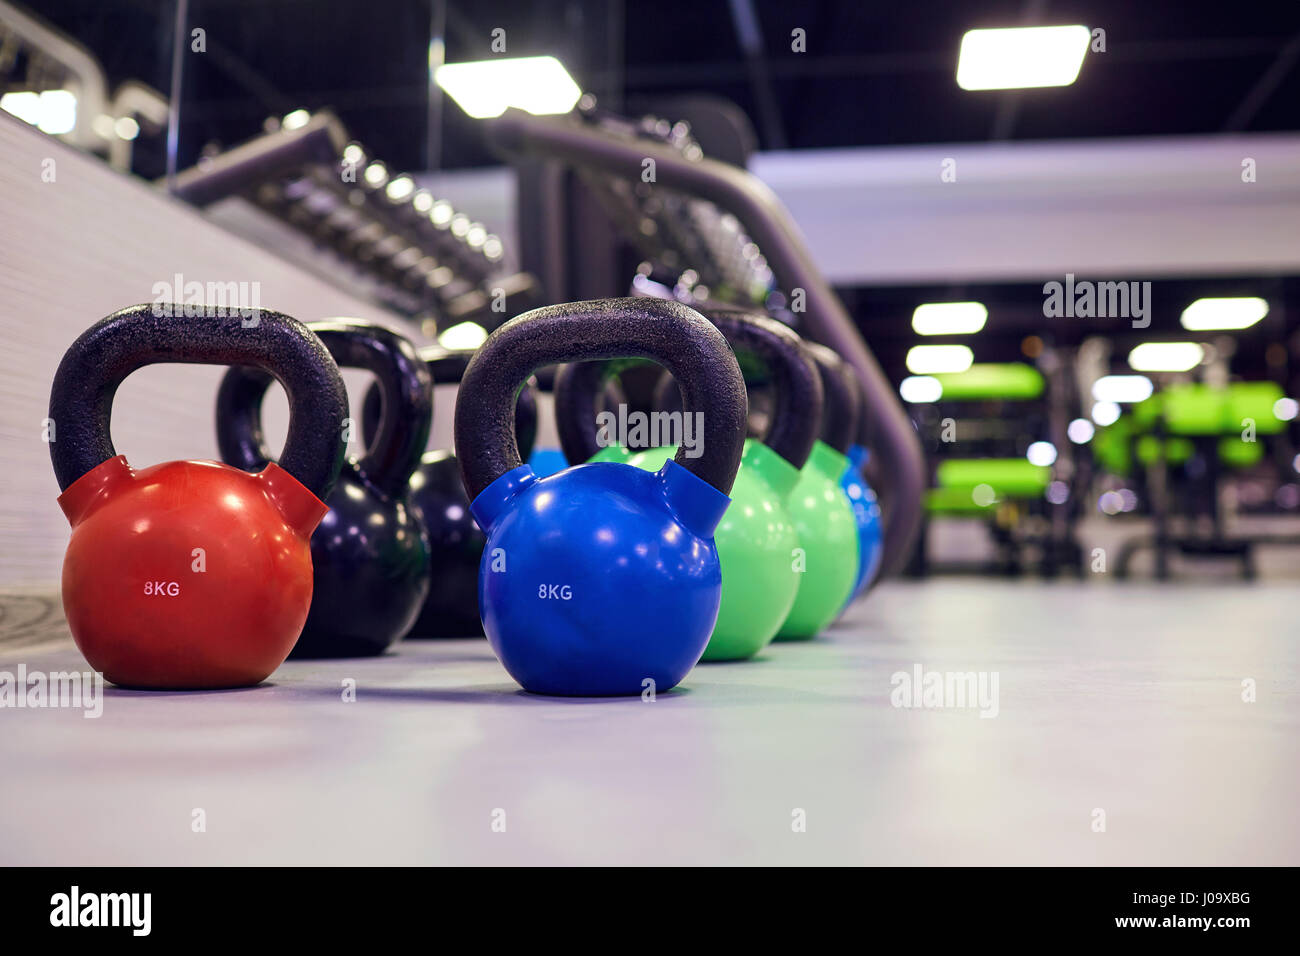 Sports kettlebell  weights on  floor in the gym - Stock Image